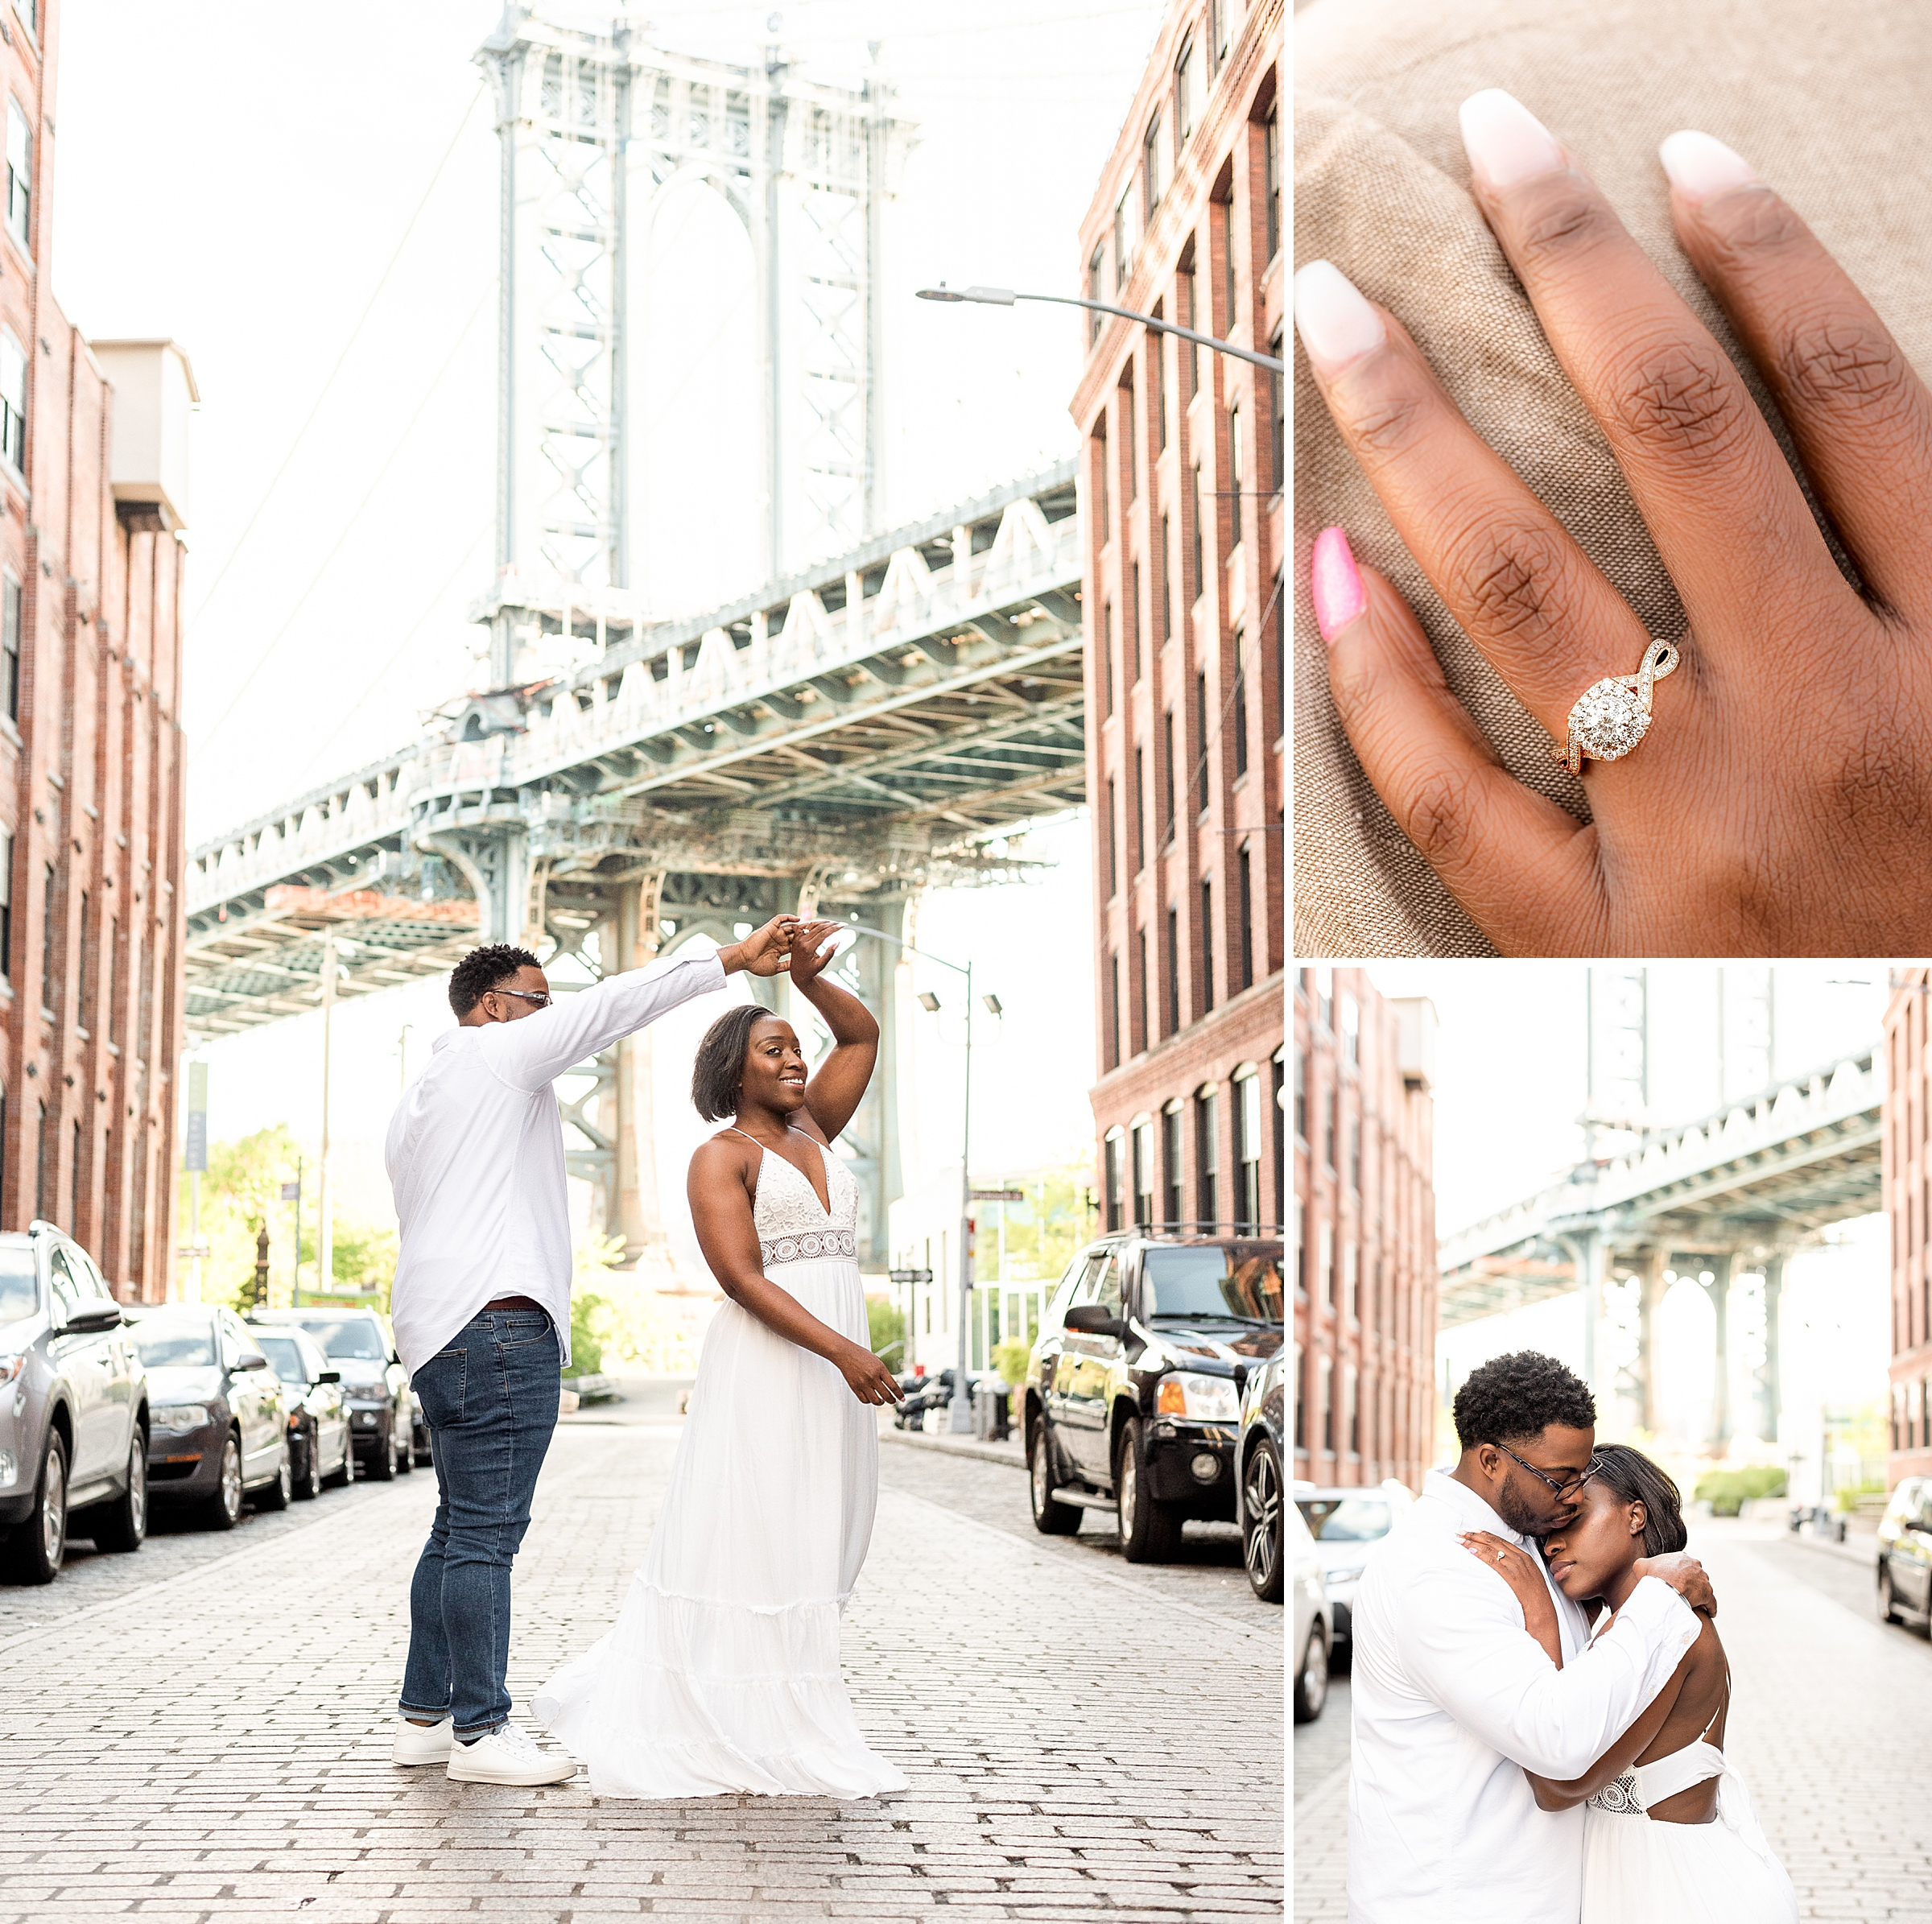 Man twirling his fiance in DUMBO Brooklyn New York City